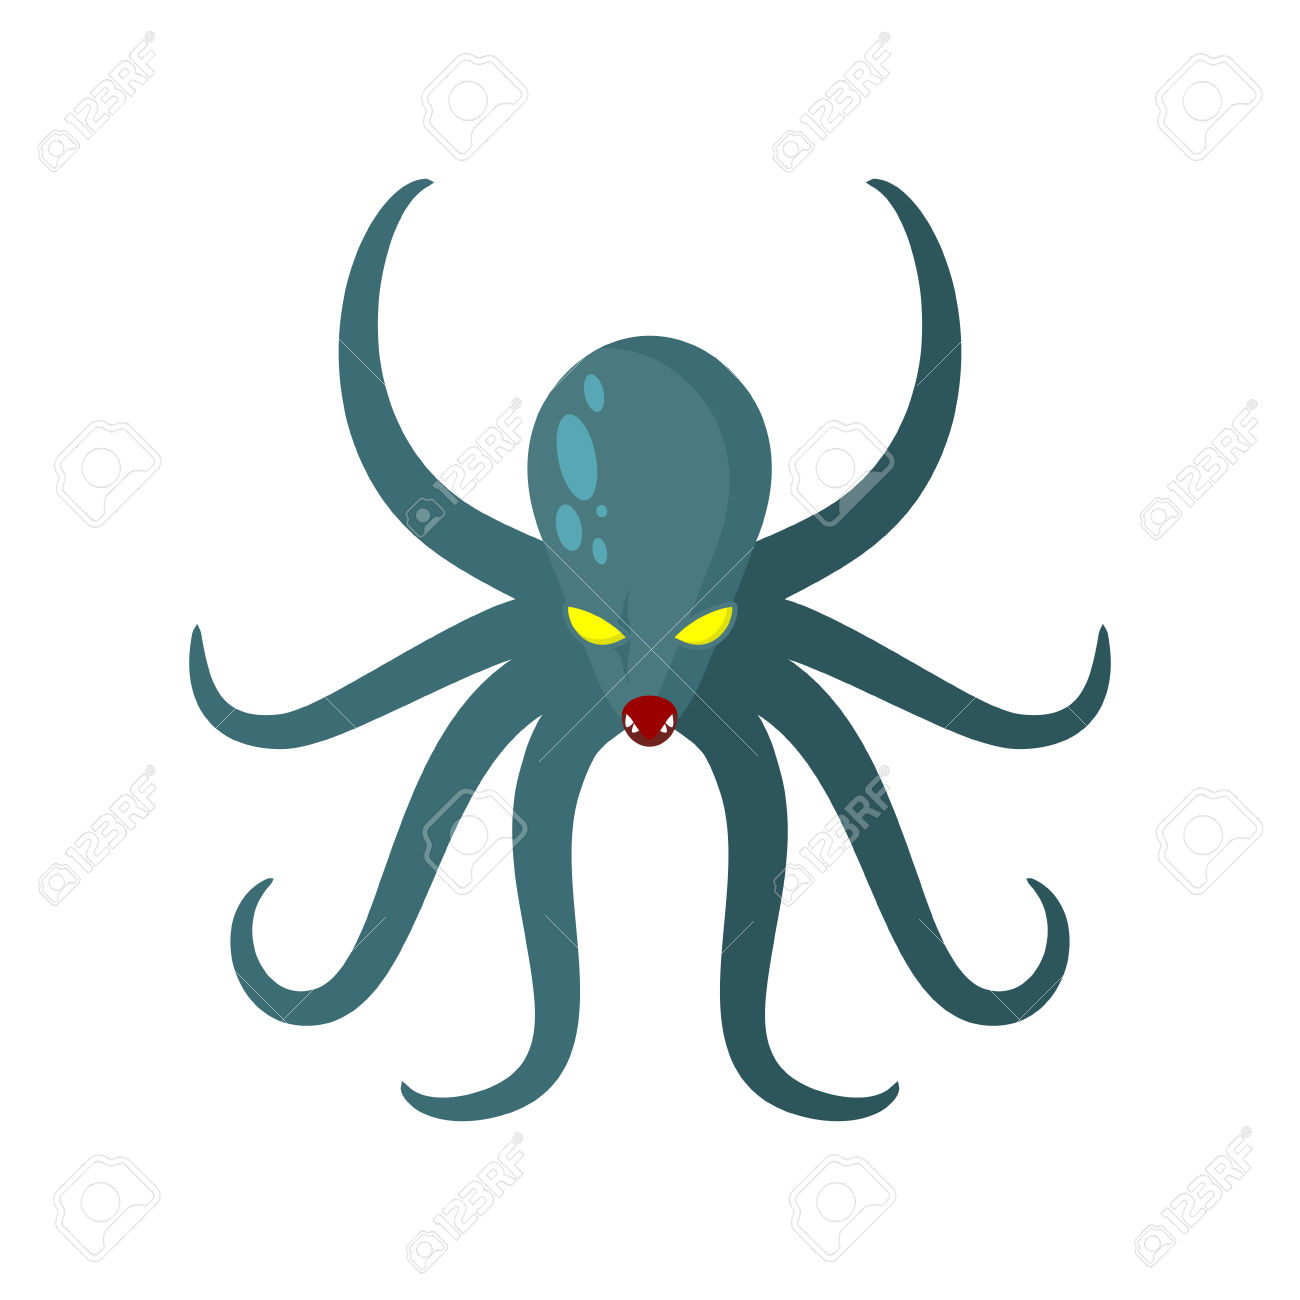 1300x1300 Octopus Clipart Octupos Free Collection Download And Share